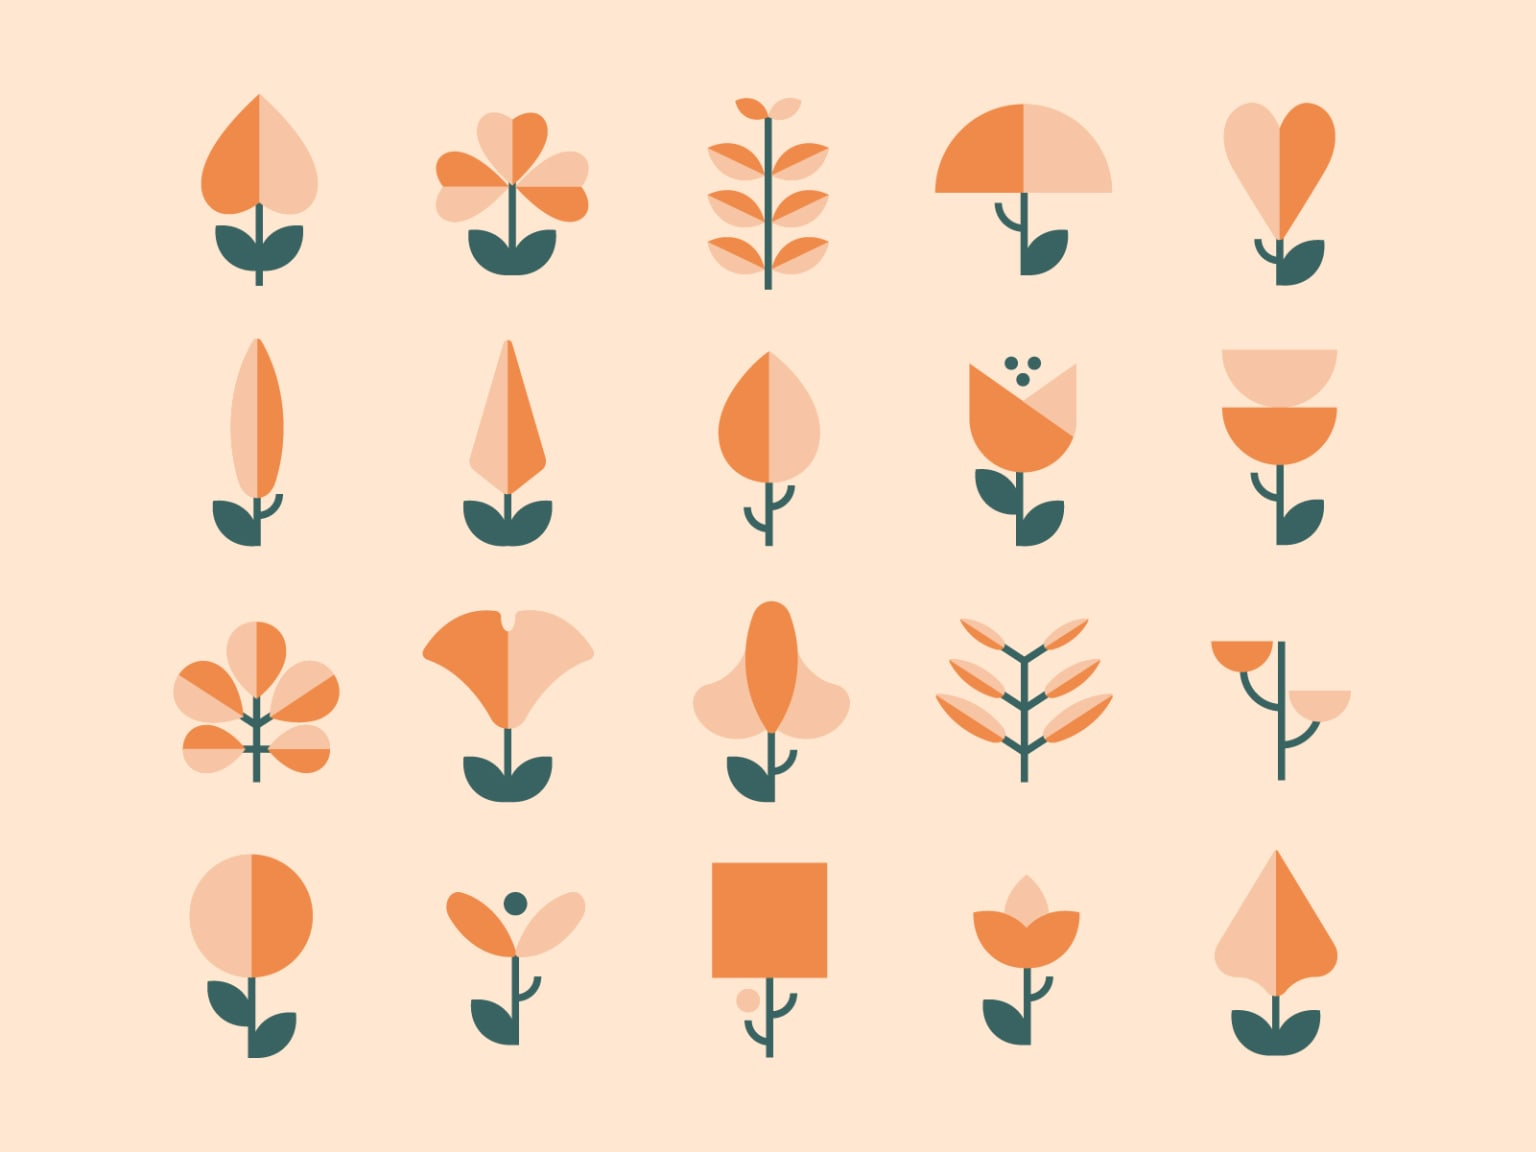 Abstract Plants and Flowers